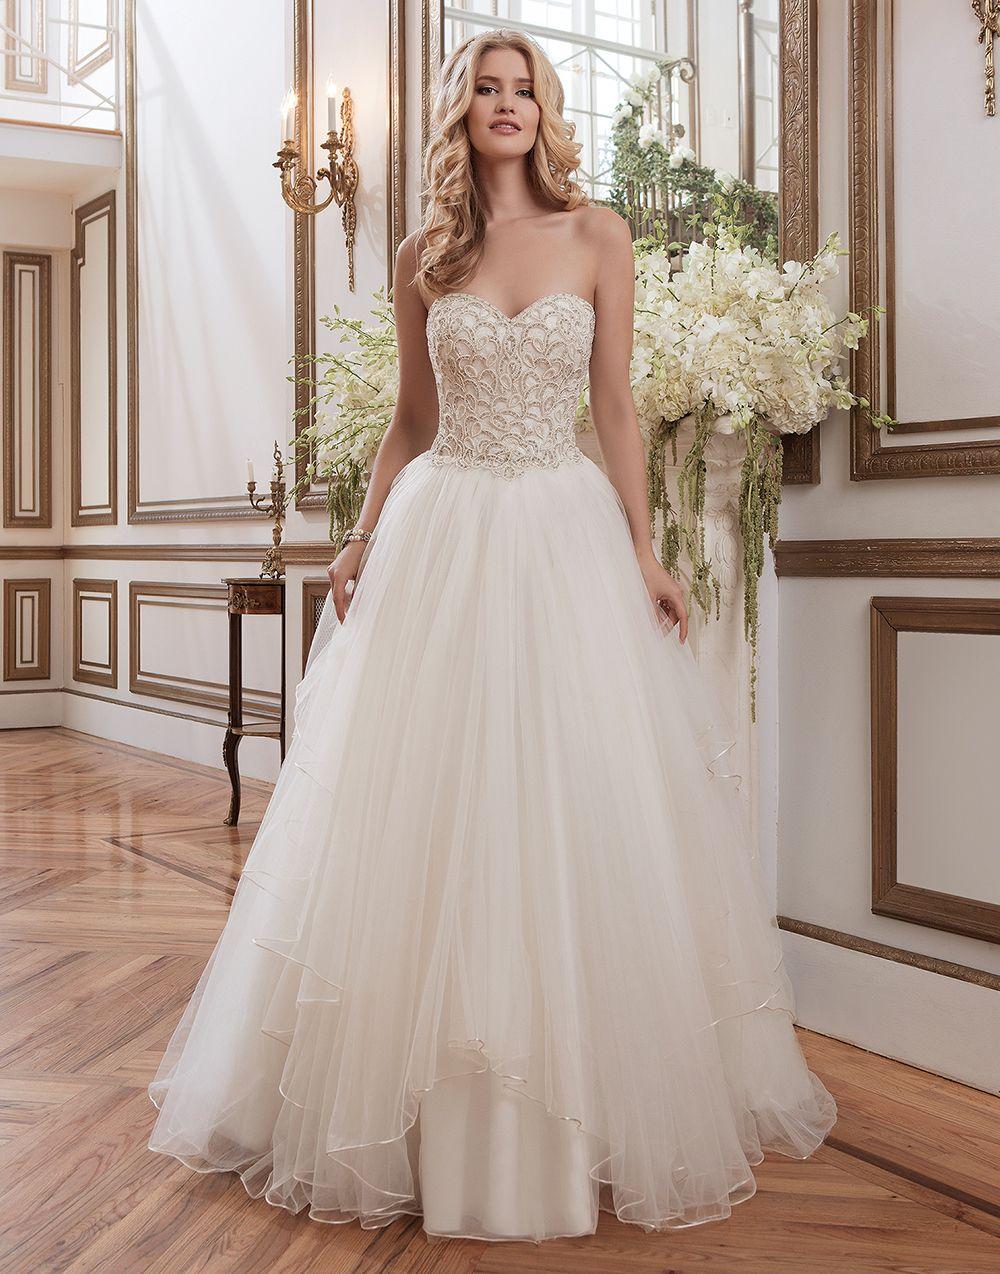 Justin alexander wedding dresses style beaded venice lace and